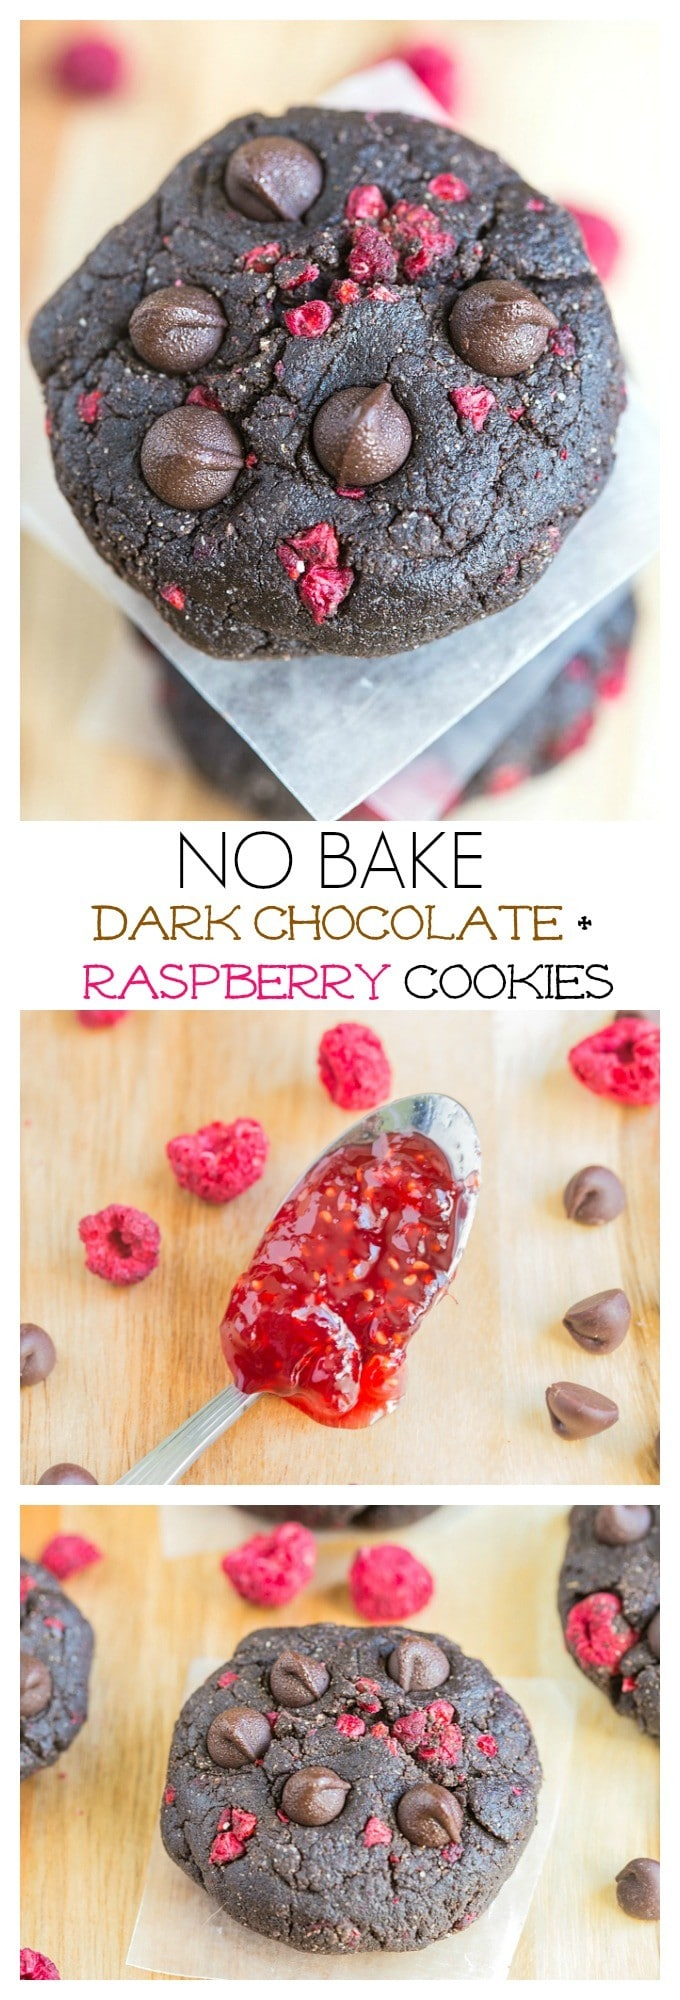 No Bake Dark Chocolate Raspberry Cookies